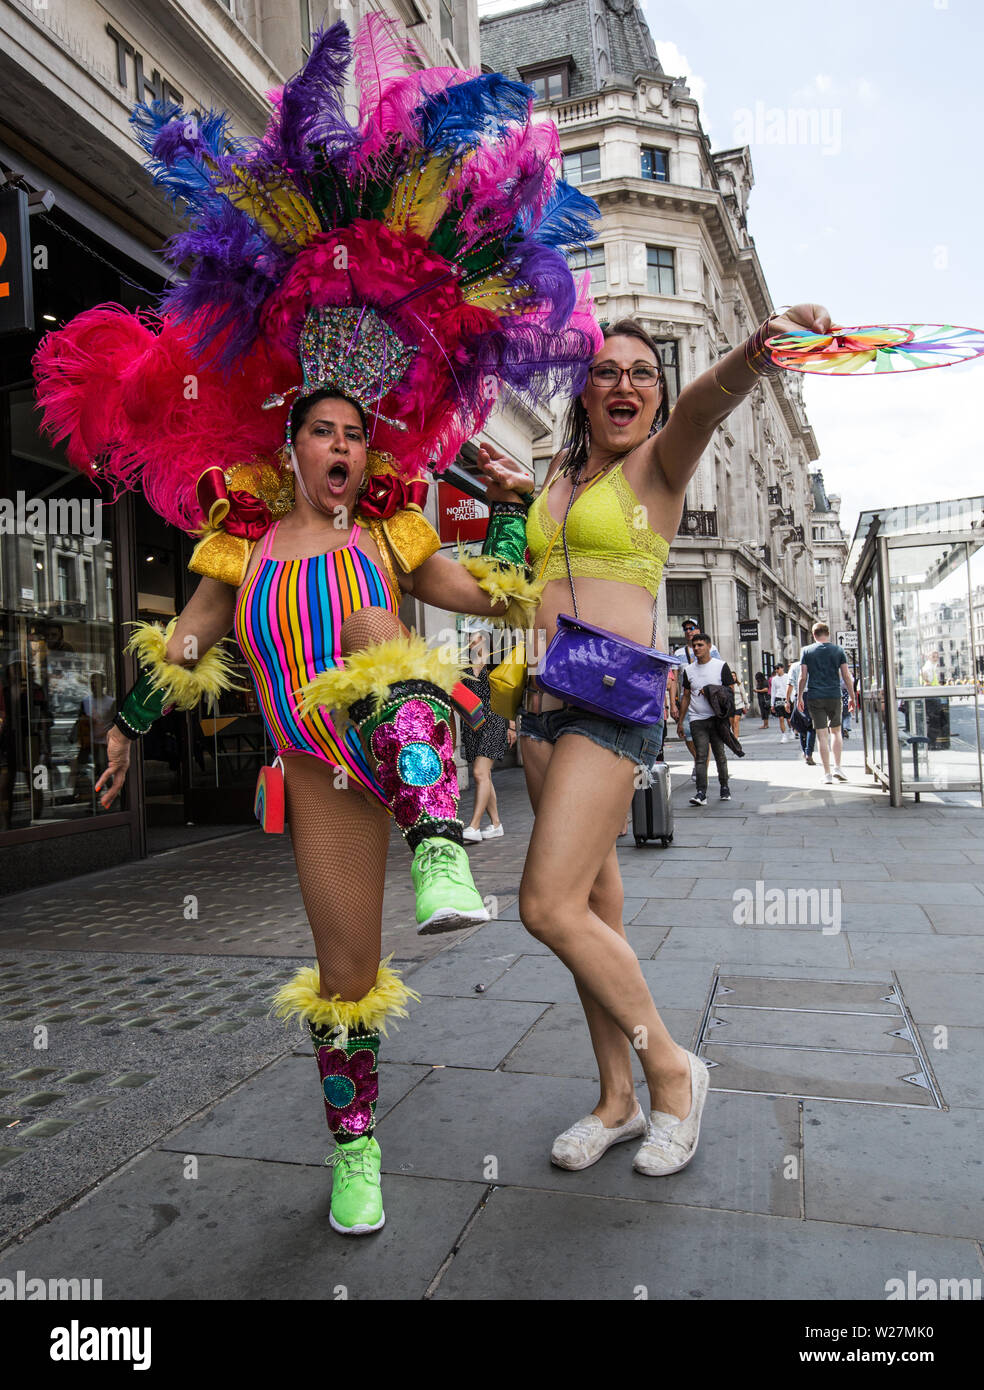 Pride London 2019 Stock Photo